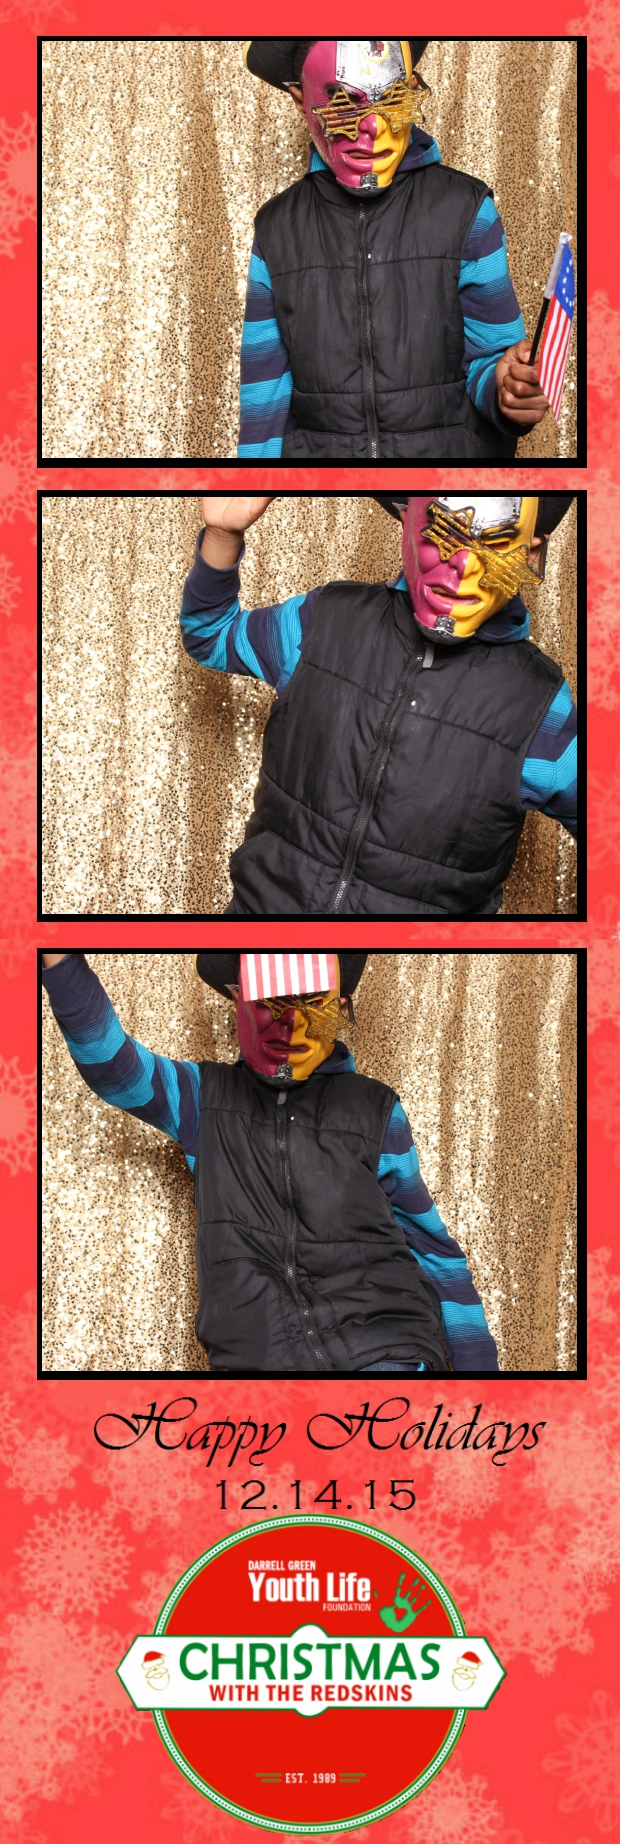 Guest House Events Photo Booth DGYLF Strips (38).jpg